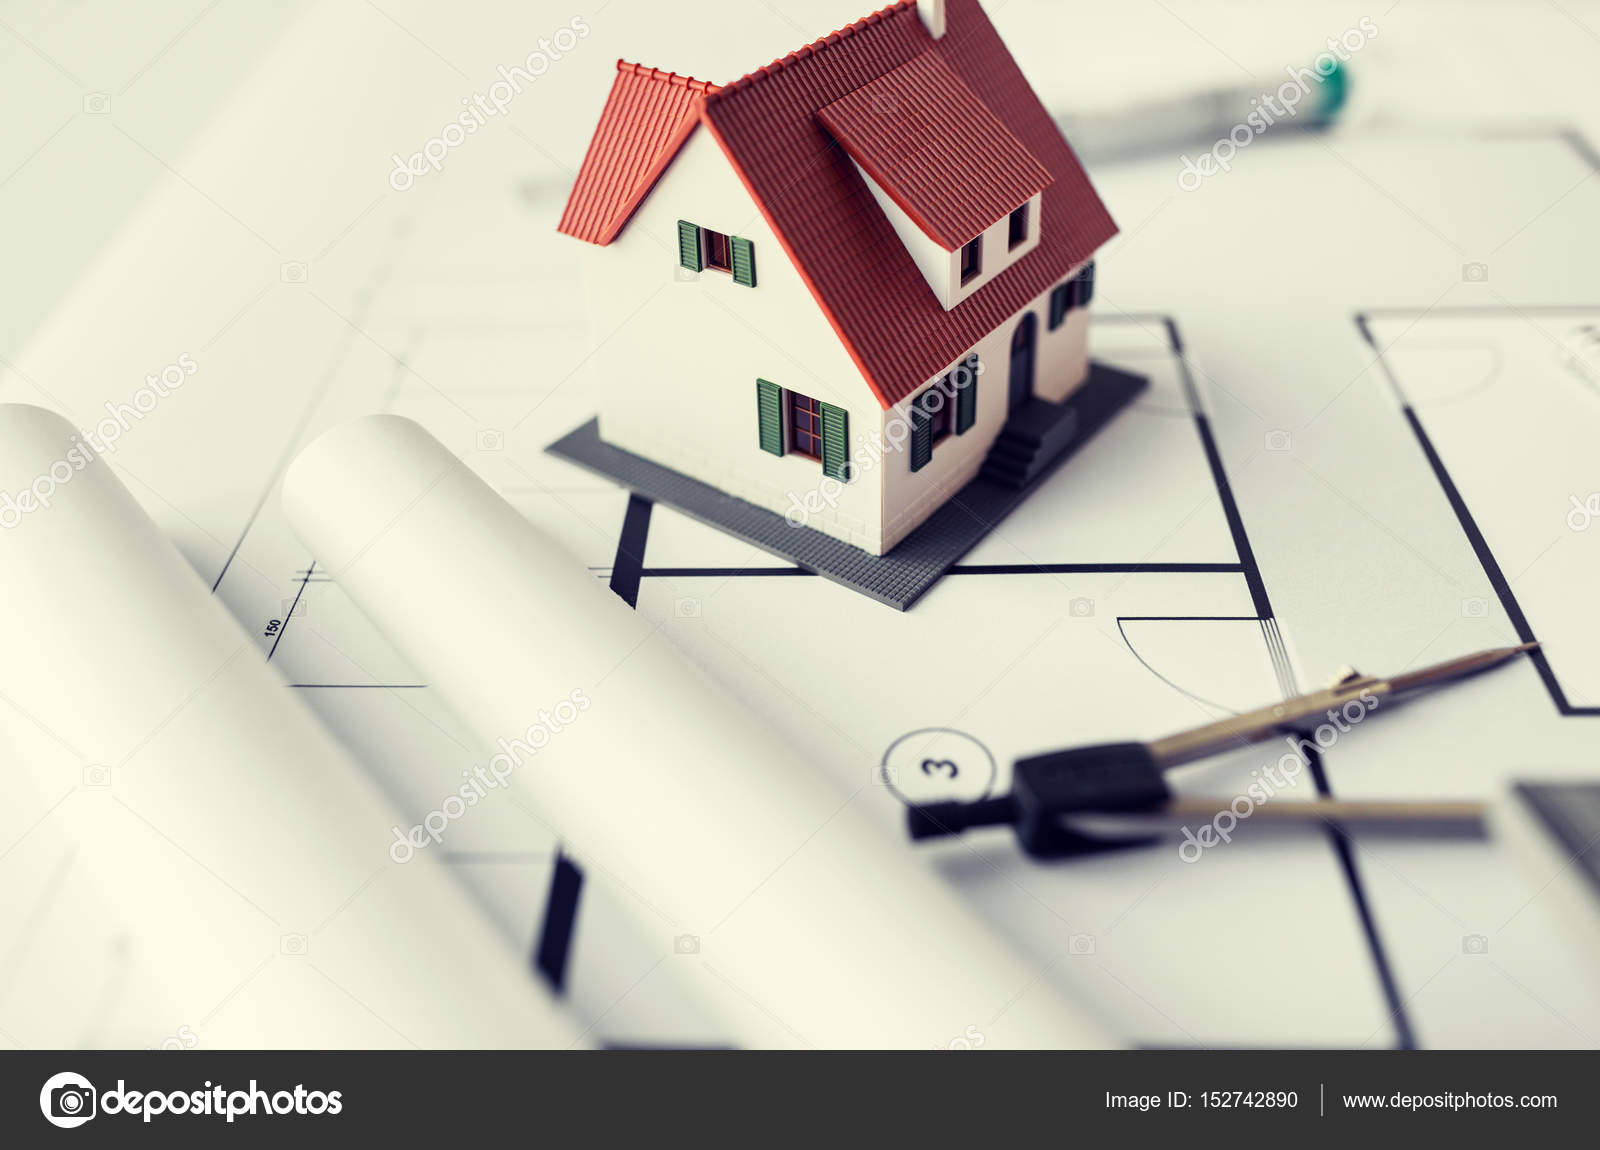 Close up of house model on architectural blueprint stock photo architecture building construction real estate and home concept close up of living house model and compass on blueprint photo by sydaproductions malvernweather Images